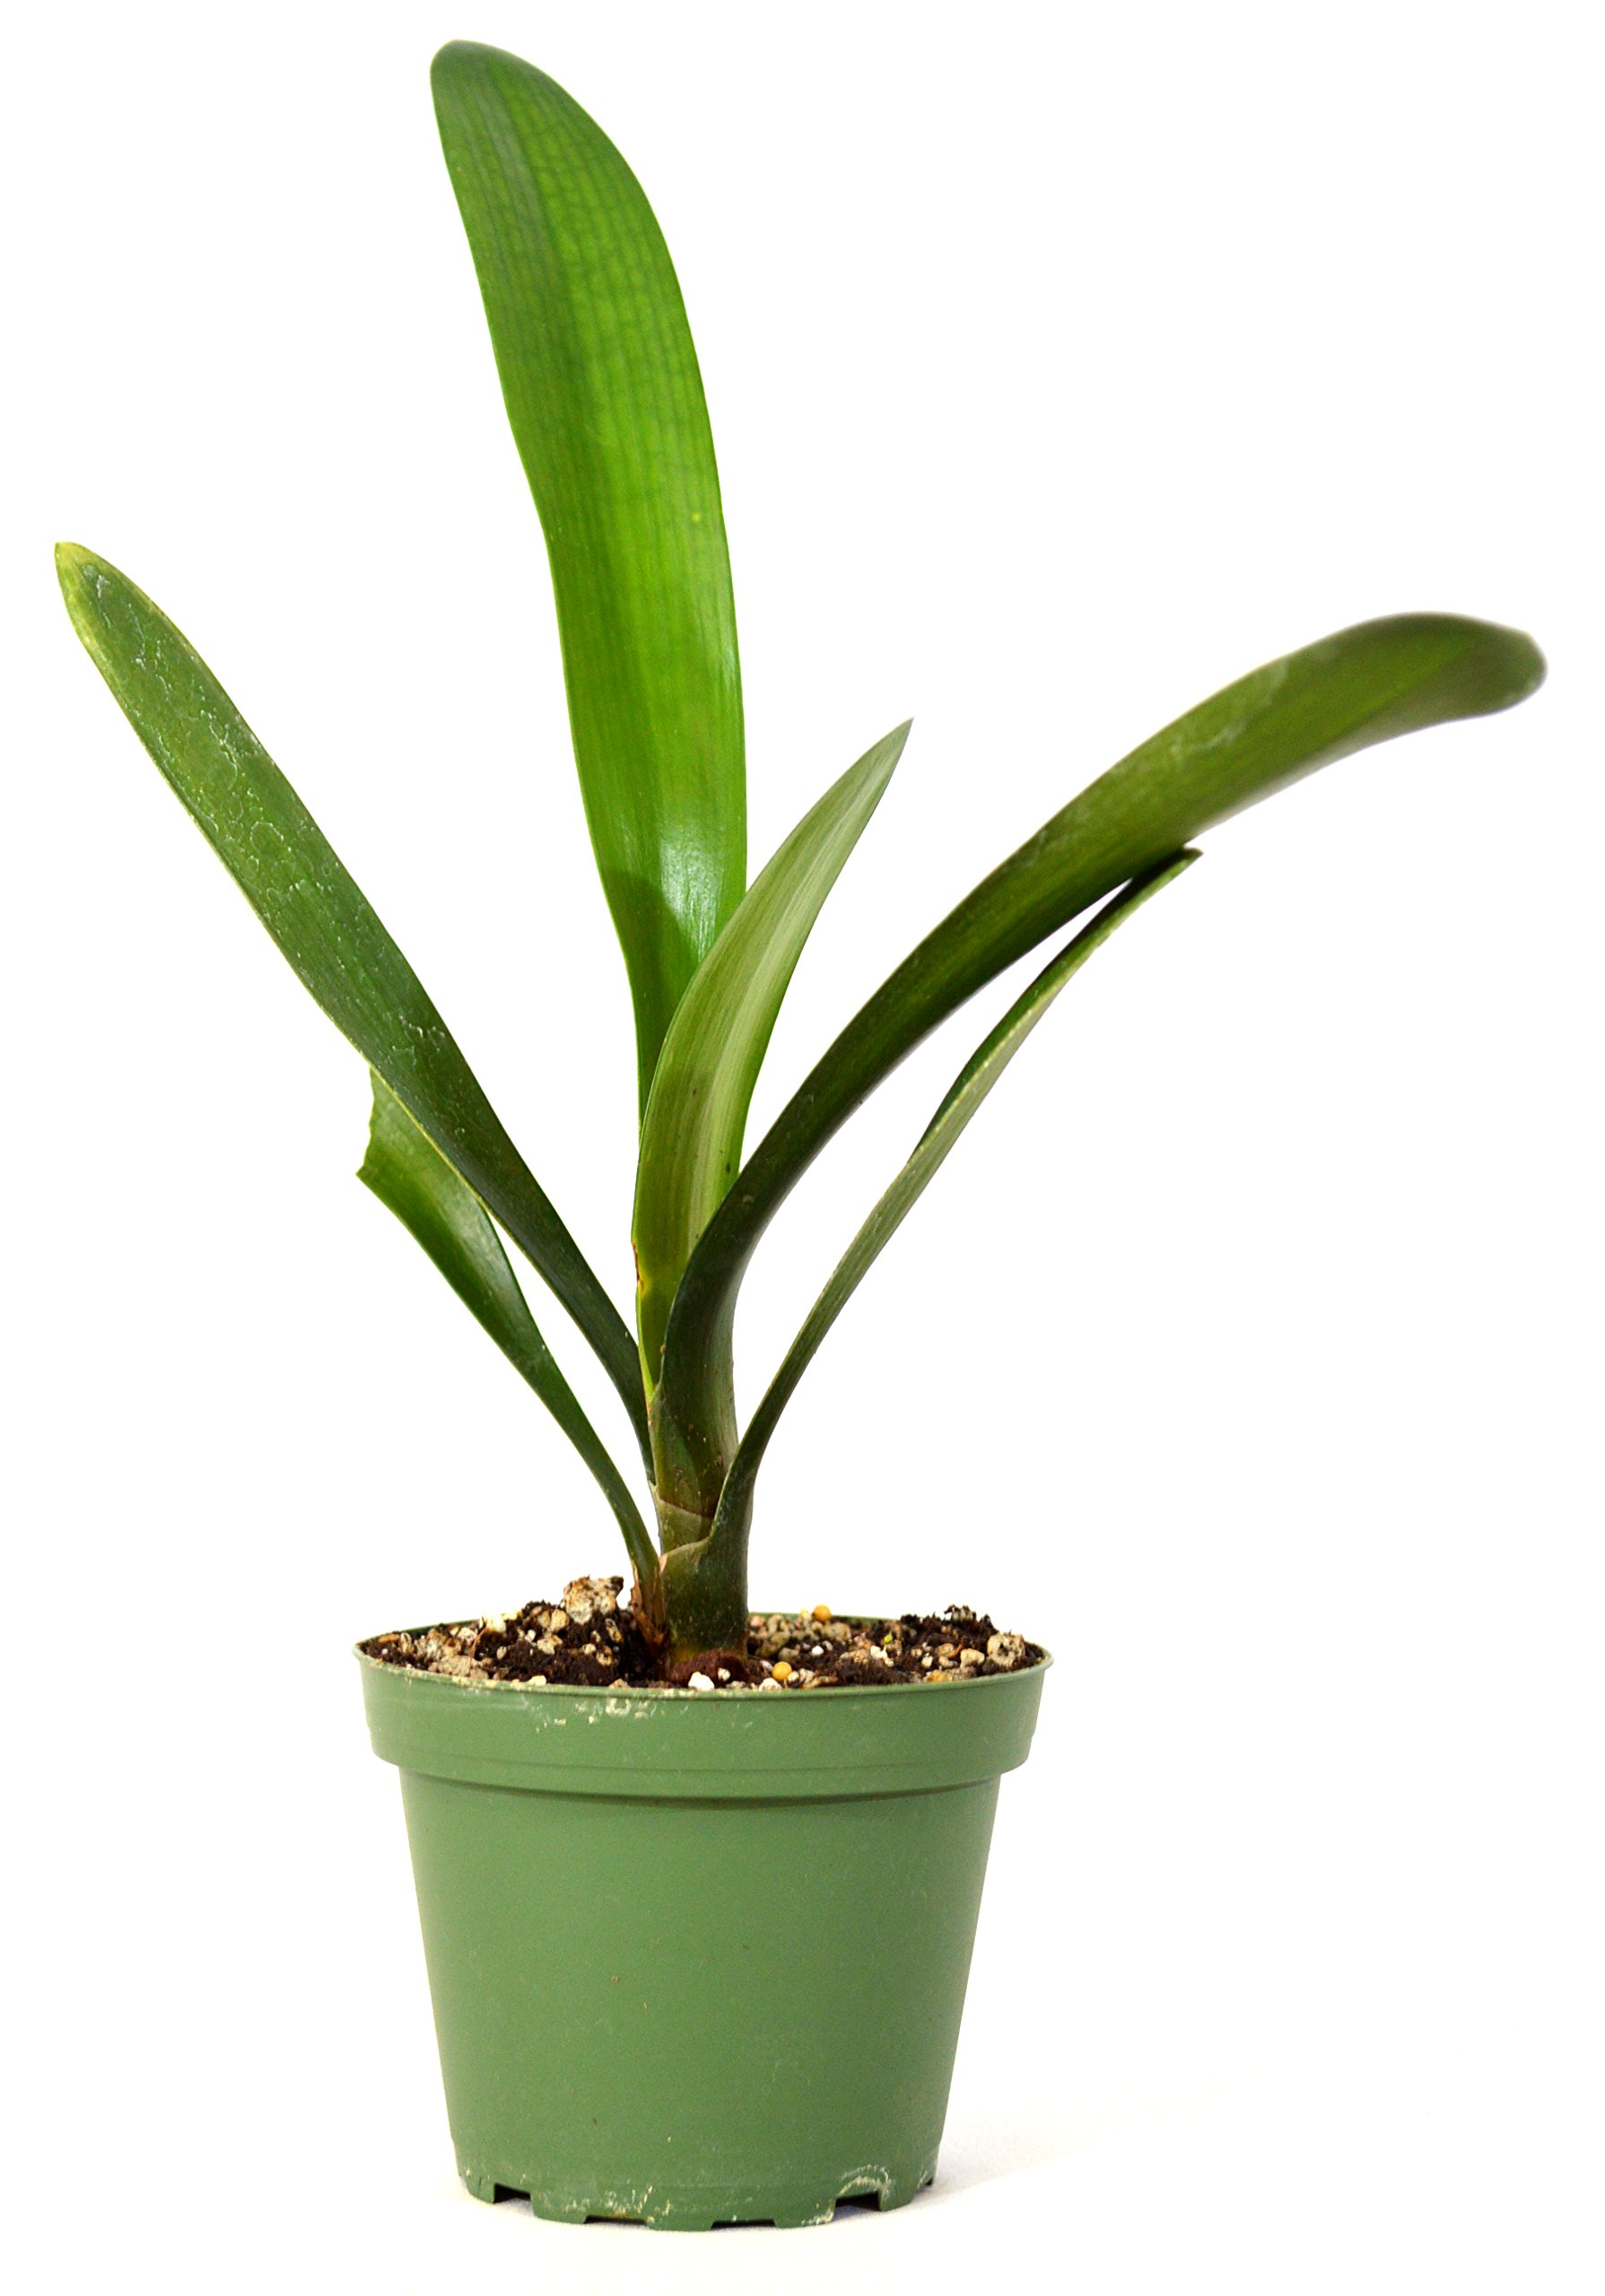 "9GreenBox - Good Hope Clivia - 4"" Pot Live Plant Ornament Decor for Home, Kitchen, Office, Table, Desk - Attracts Zen, Luck, Good Fortune - Non-GMO, Grown in The USA"